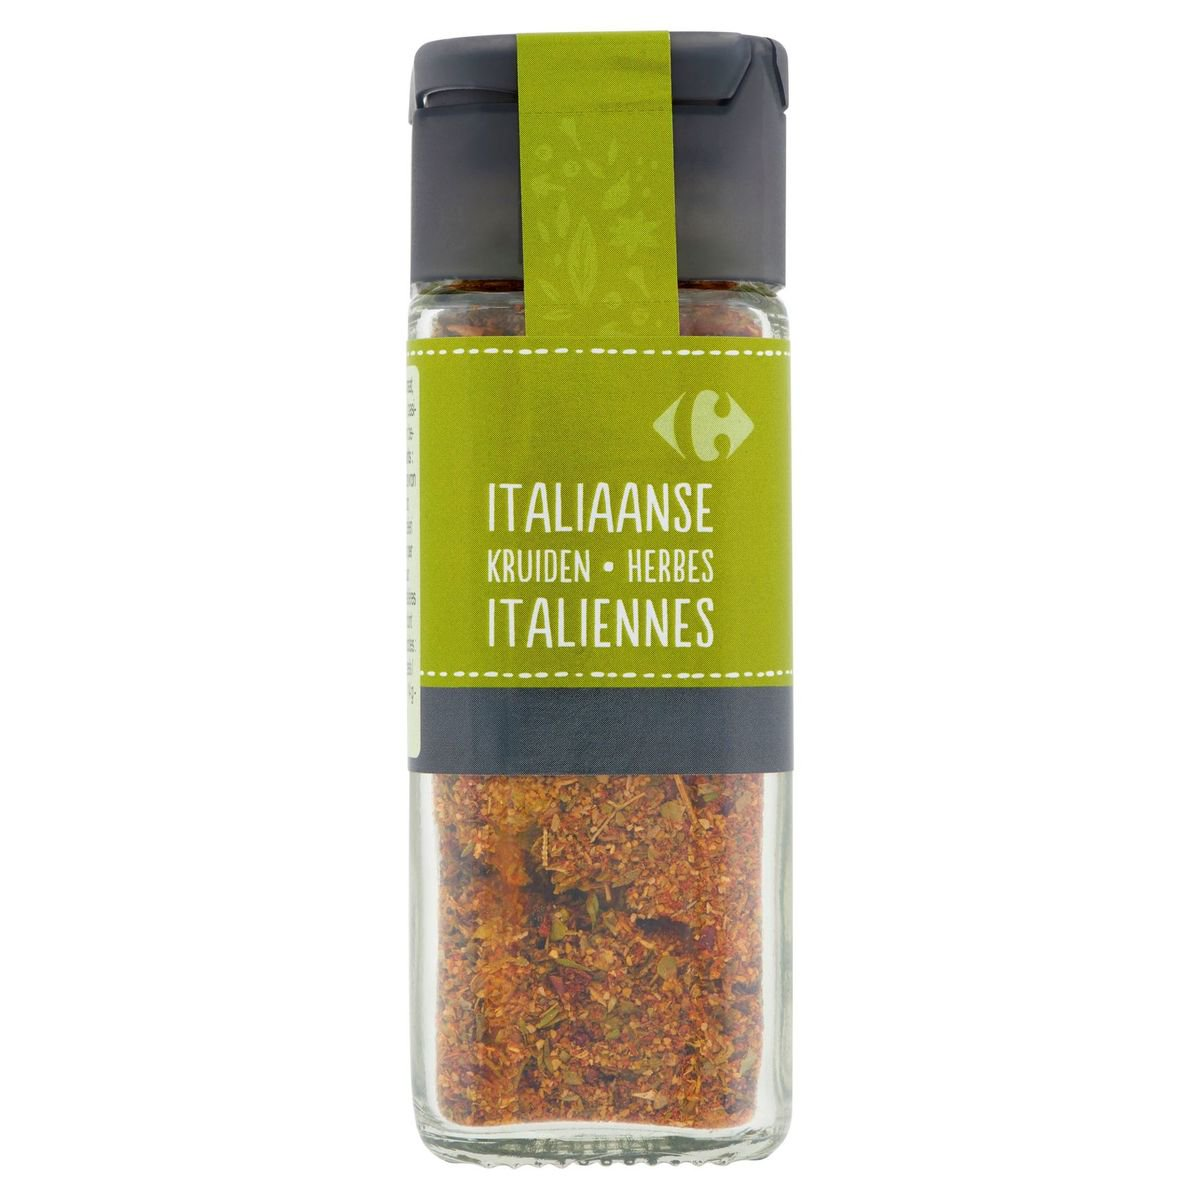 Carrefour Herbes Italiennes 30 g